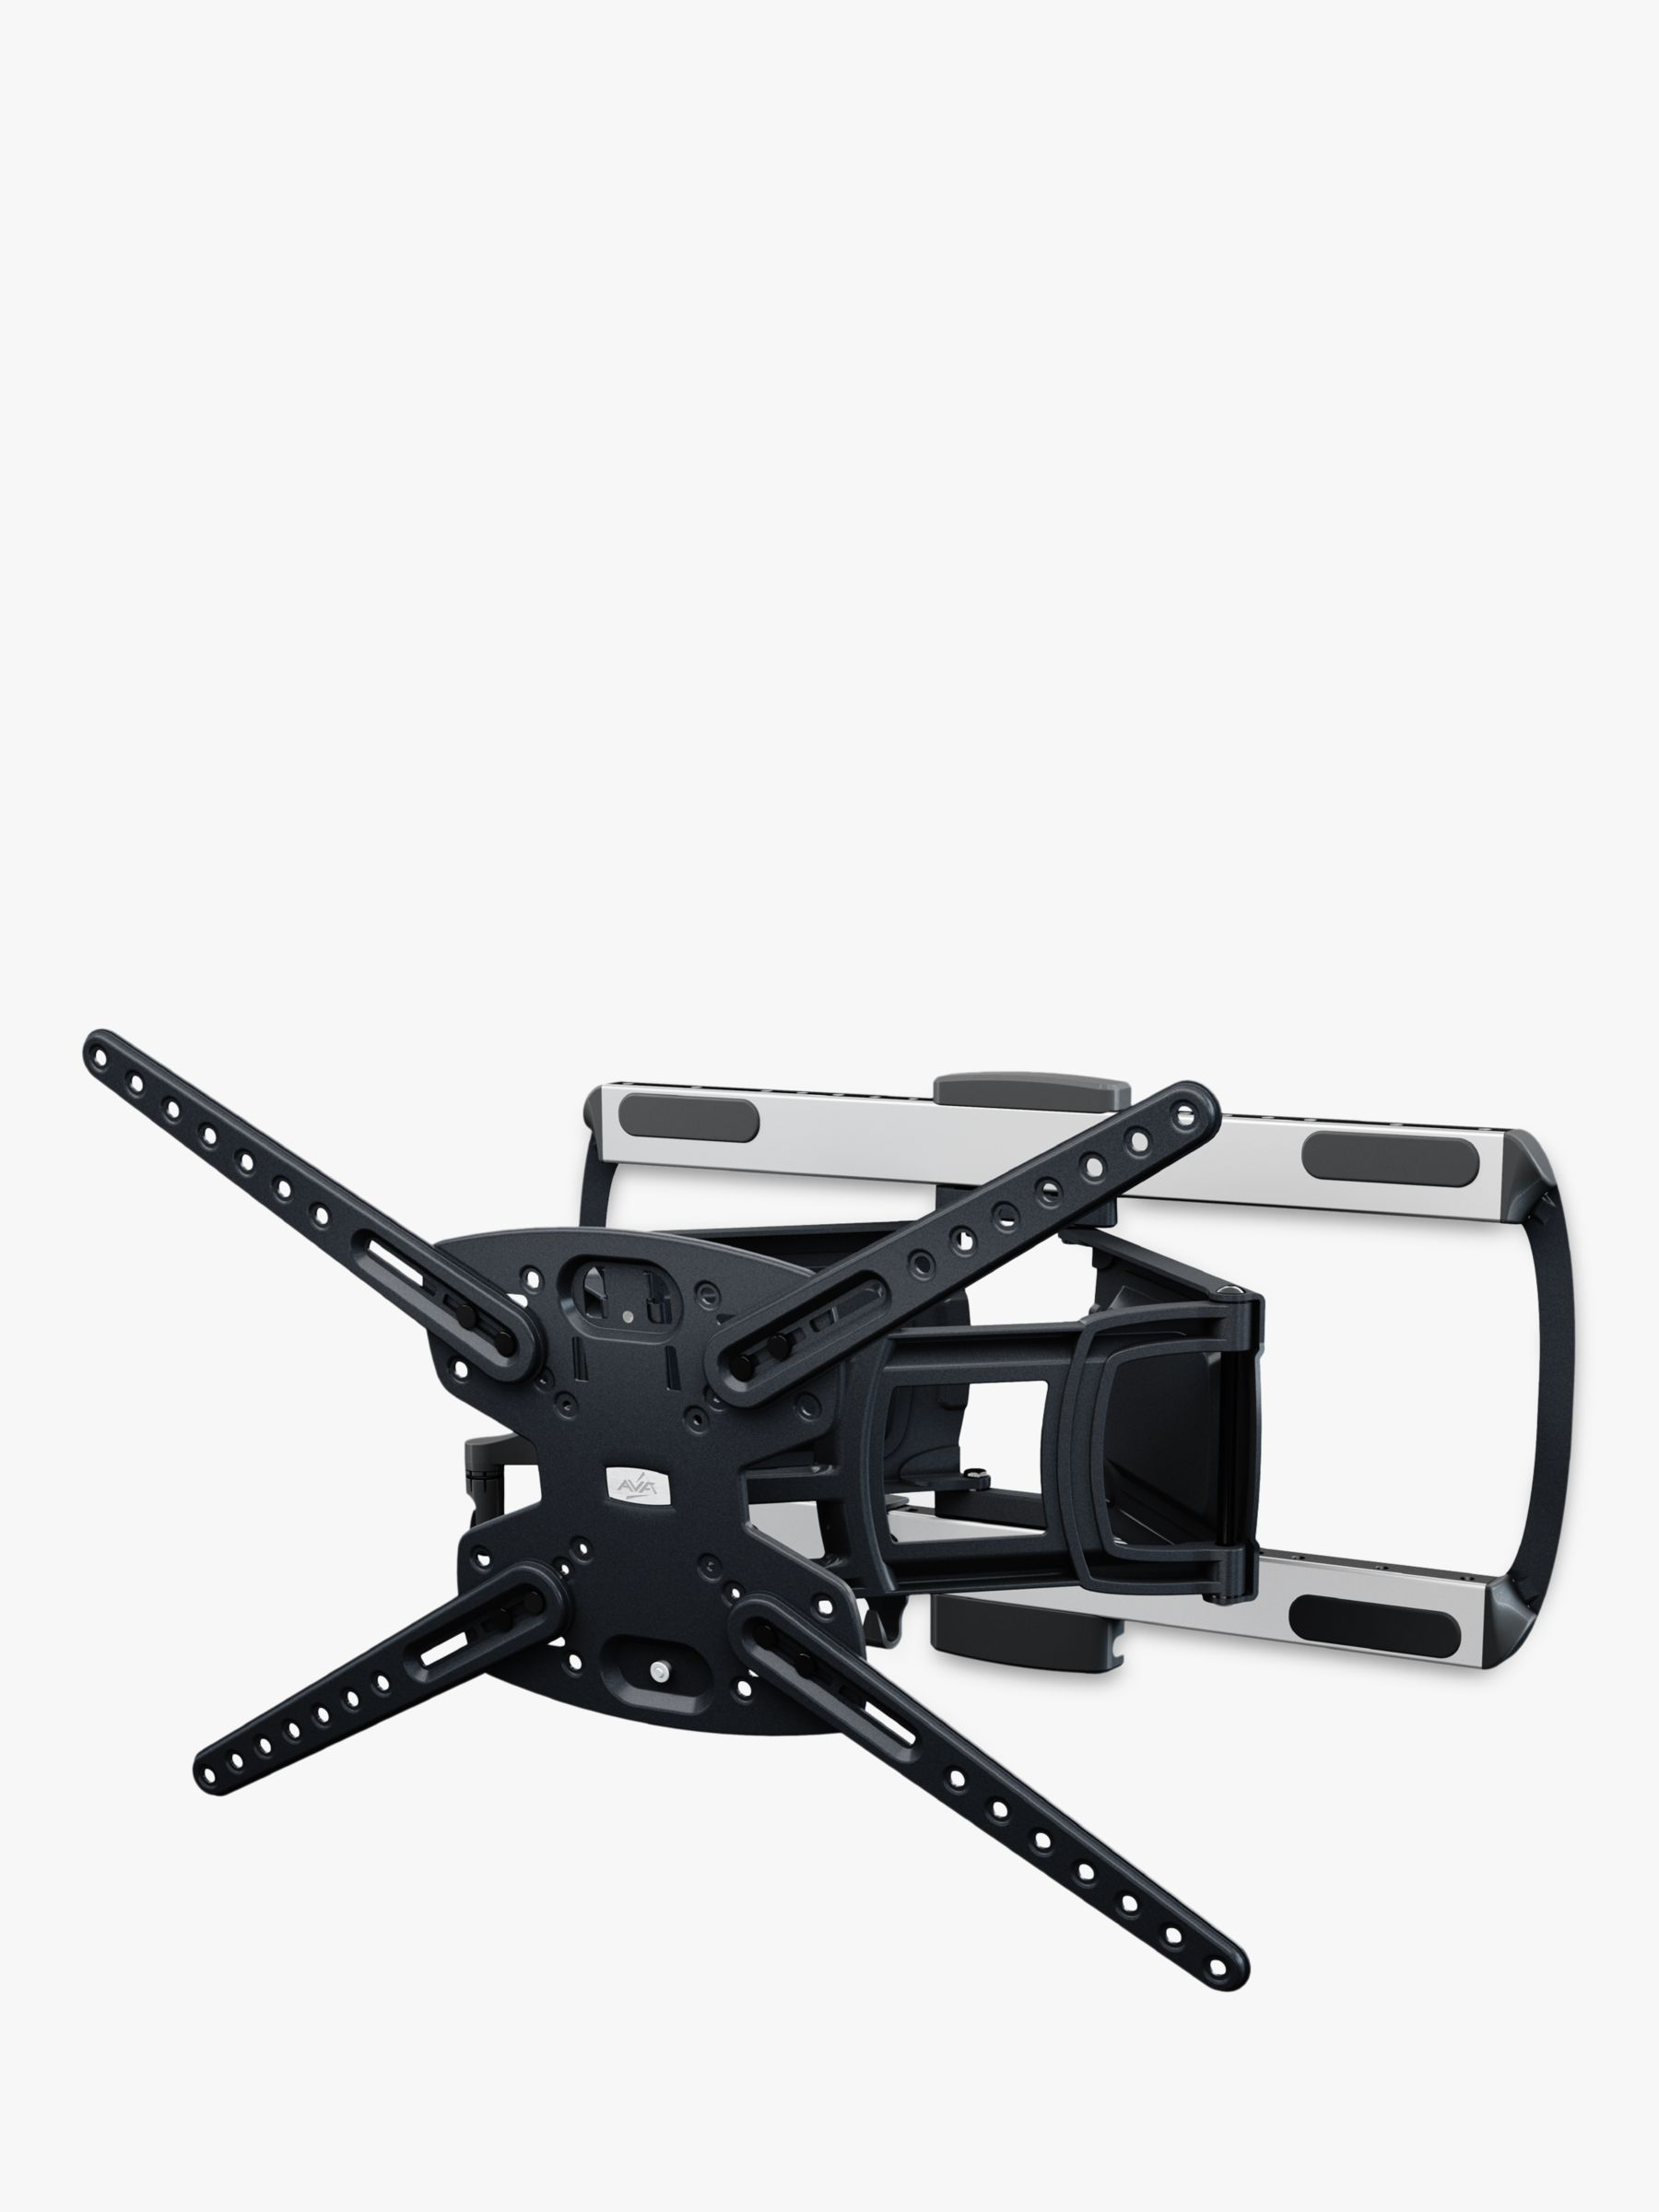 AVF AVF JXNL655 Multi Position Wall Mount for TVs up to 80